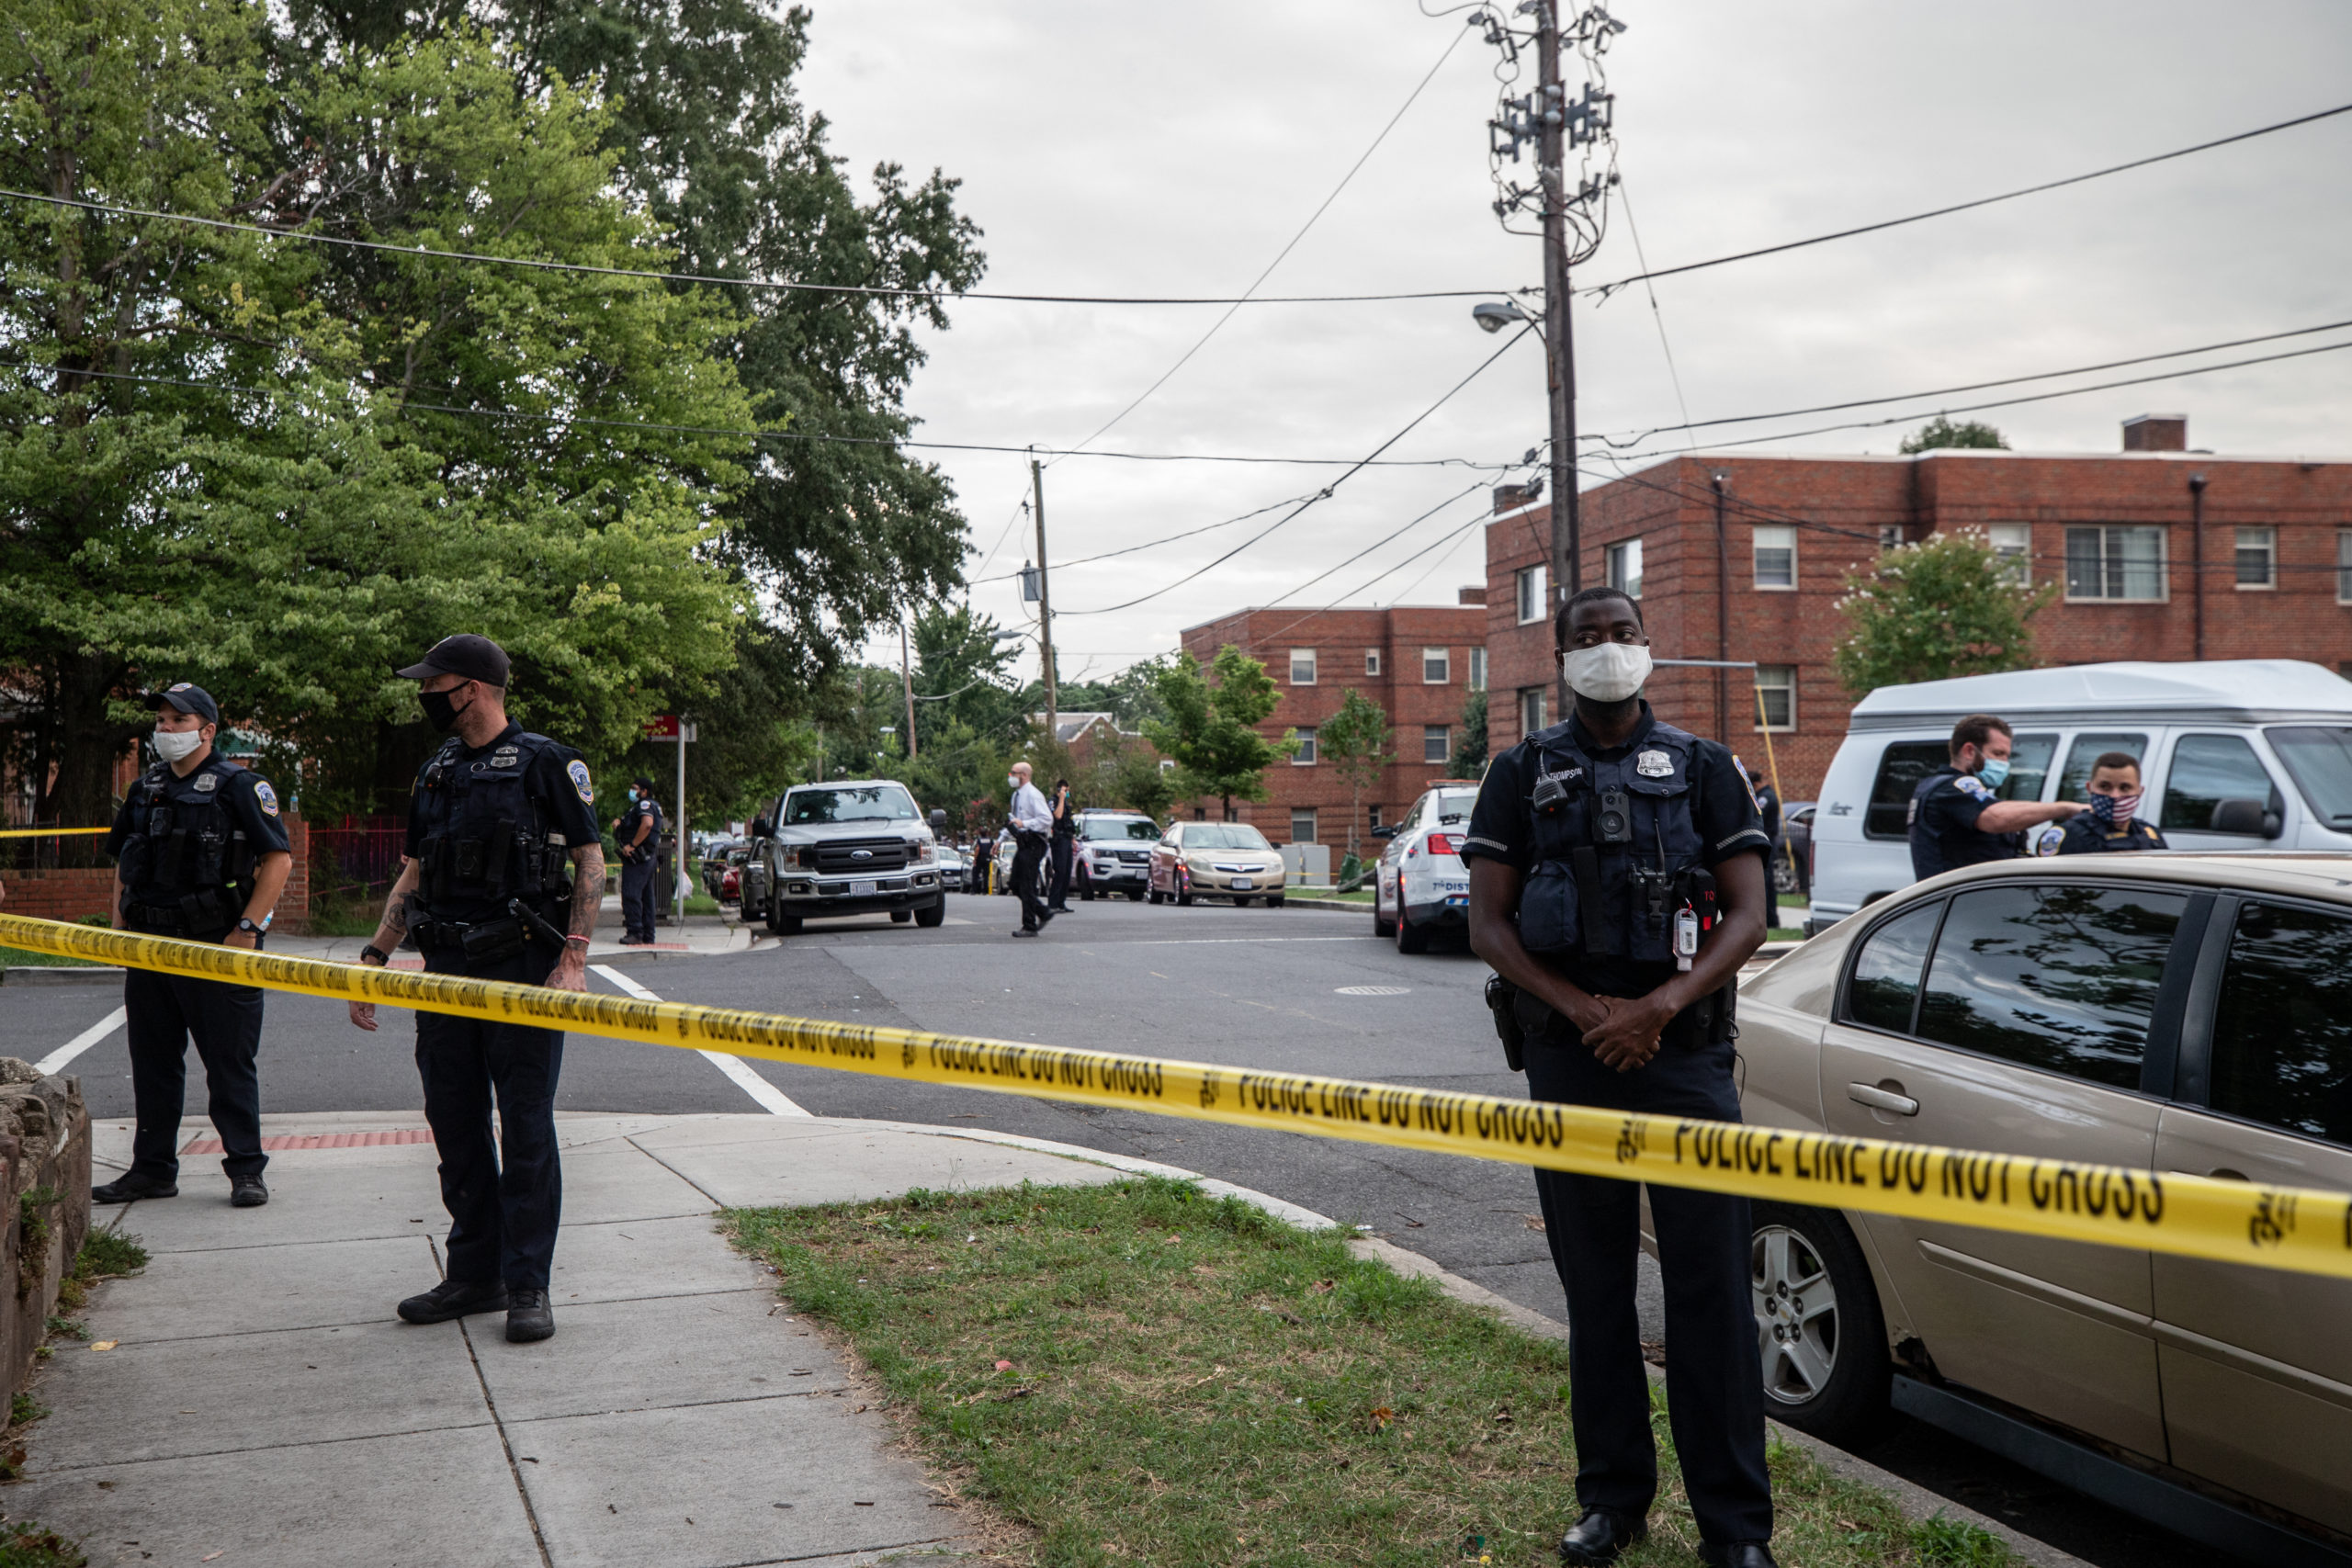 Police block off a crime scene in southeast Washington D.C. where a Metropolitan Police Department officer fatally shot a young black man. (Kaylee Greenlee/Daily Caller News Foundation)